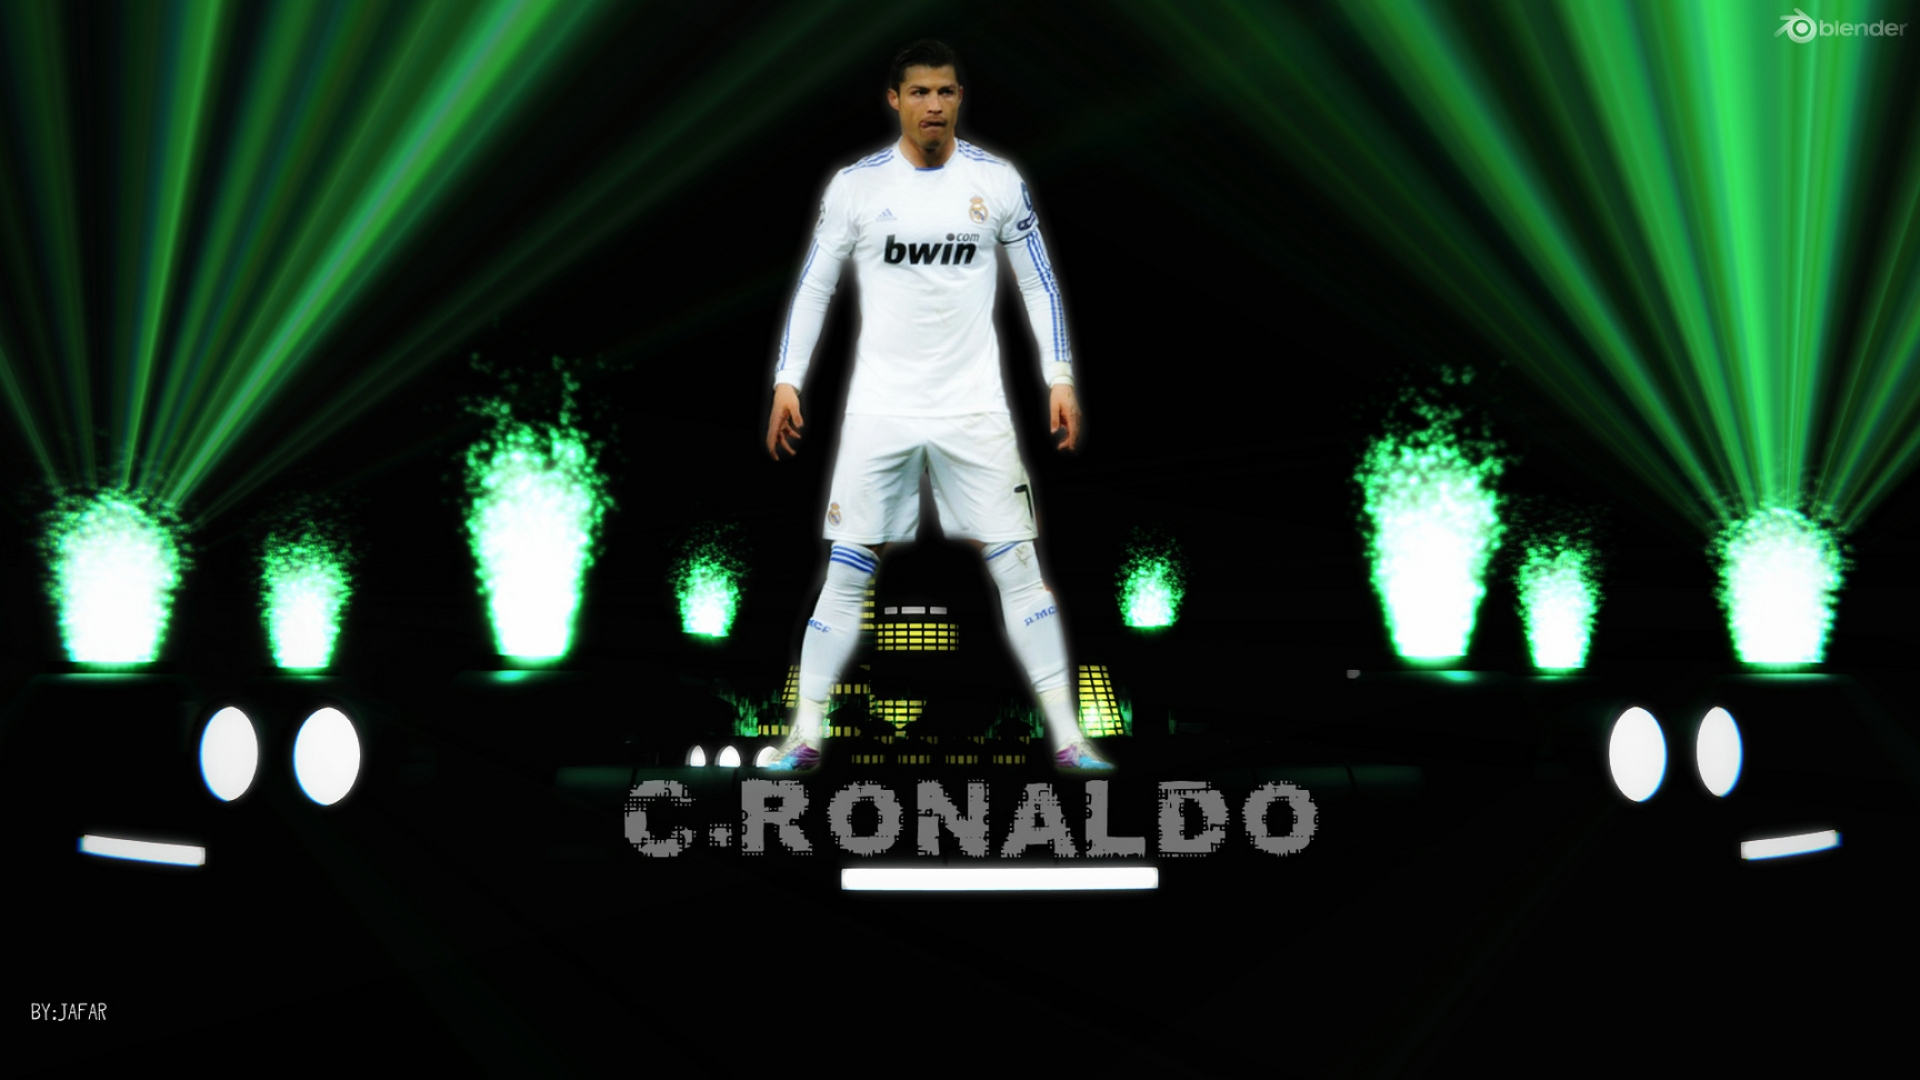 Real Madrid Ronaldo Wallpaper